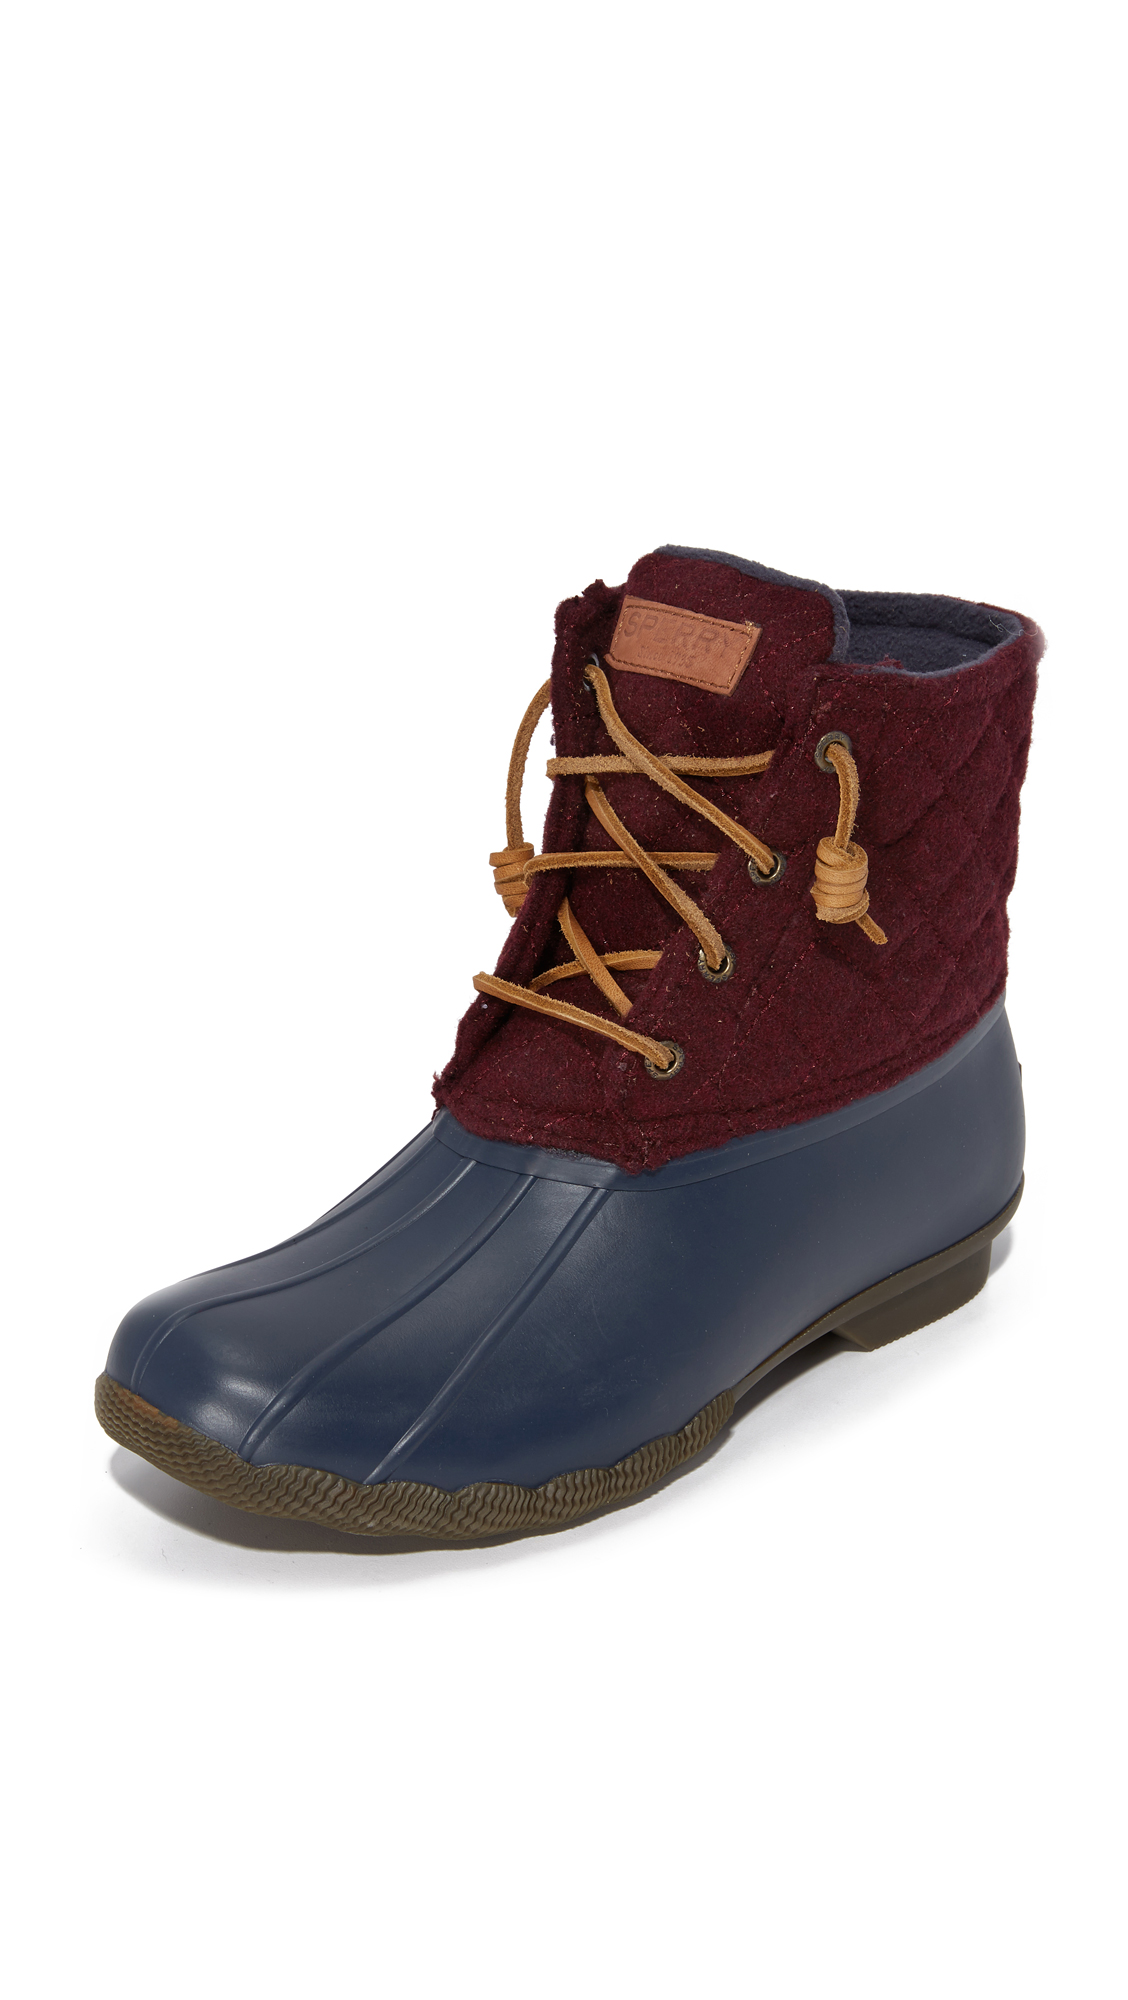 sperry female sperry saltwater quilted wool booties navymaroon